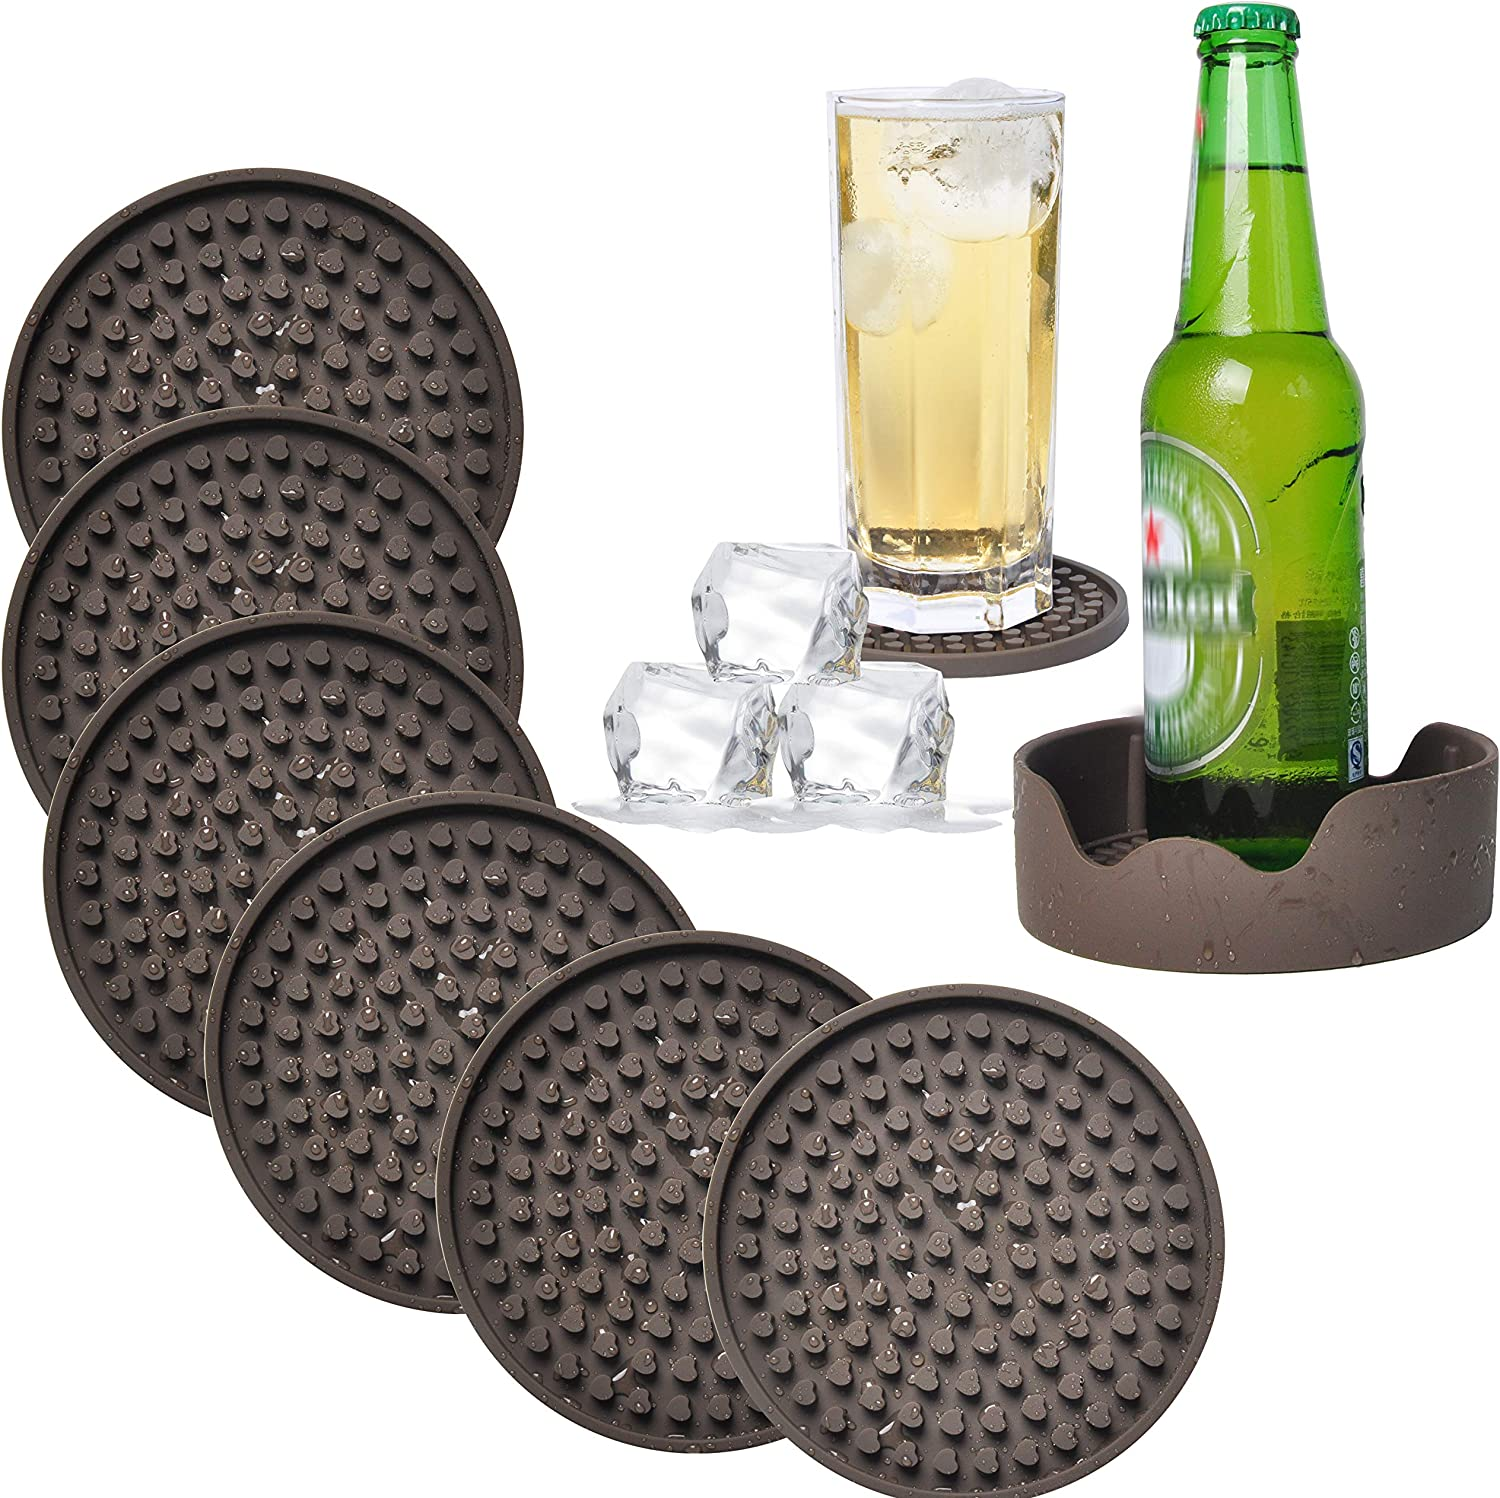 Set of 6 Silico Table Drinks Coasters Set with Holder Box /& Bottle Opener Ring